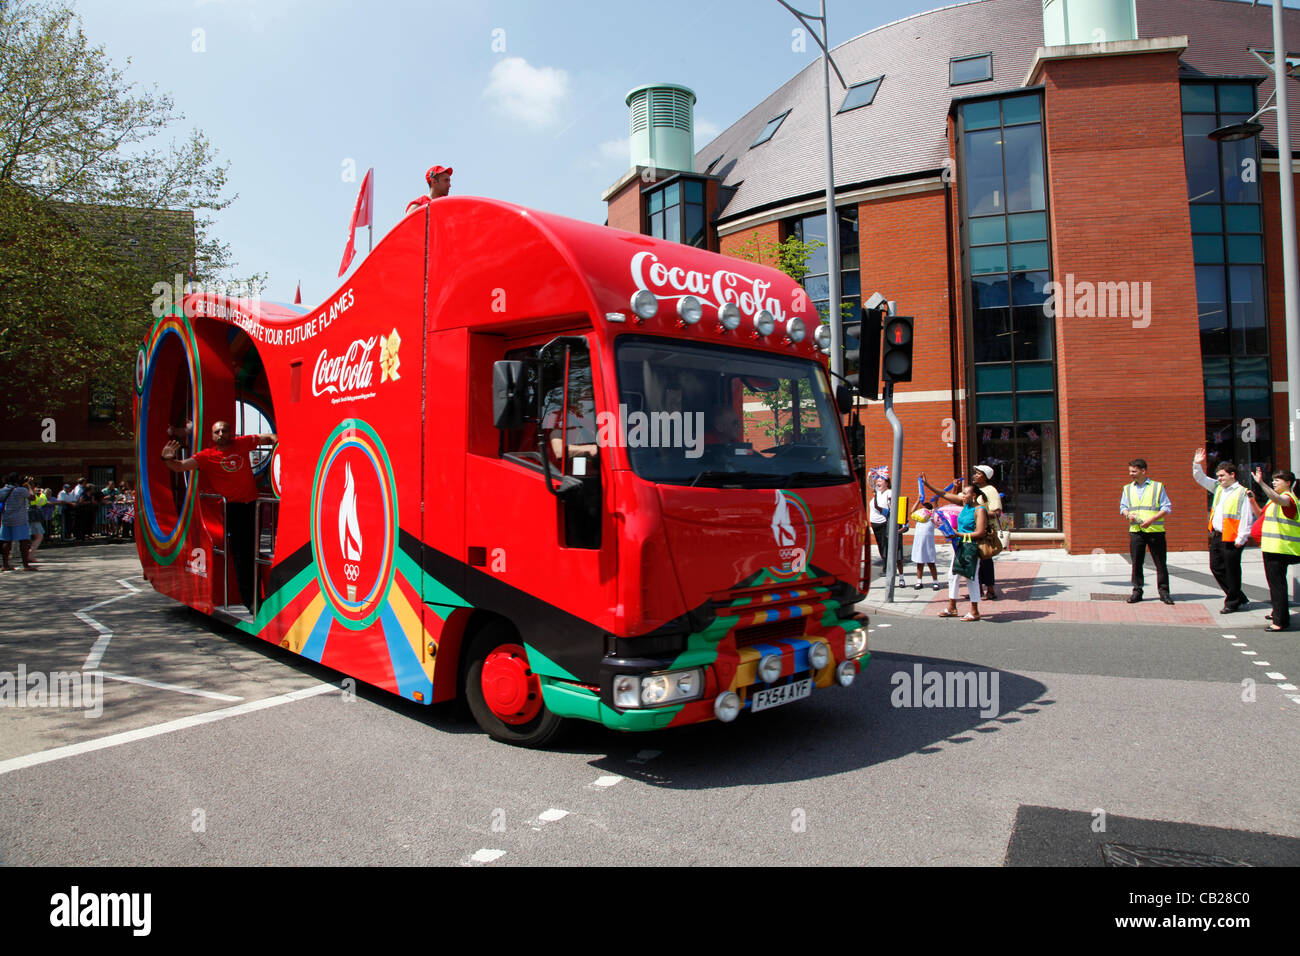 Wednesday, May 23rd 2012.  Swindon, Wiltshire, England, UK. The Coca-Cola coach signals the imminent arrival of - Stock Image